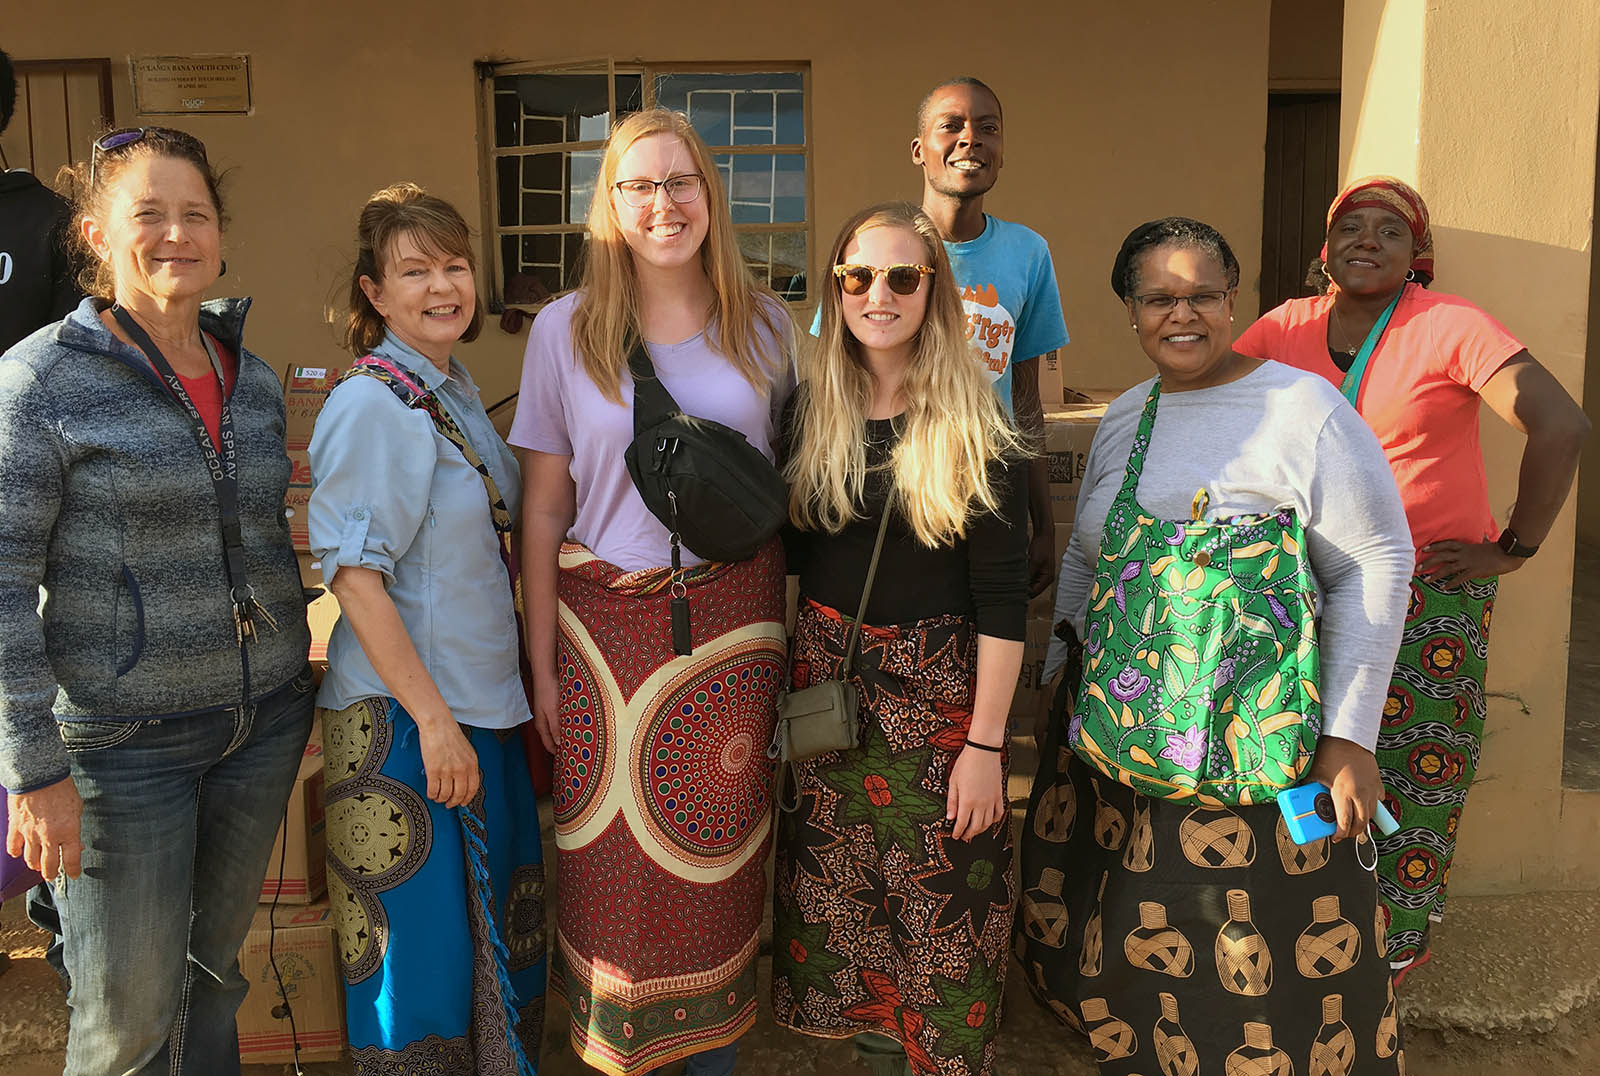 A group of UNK students and faculty traveled to Zambia this summer to work with Dr. Marjie Heier, left, at the Chifundo Rural Health Center, where Heier serves as medical director. Heier will speak Wednesday during the Global Perspective on Telecare and Rural Health forum hosted by UNK. (Courtesy photo)